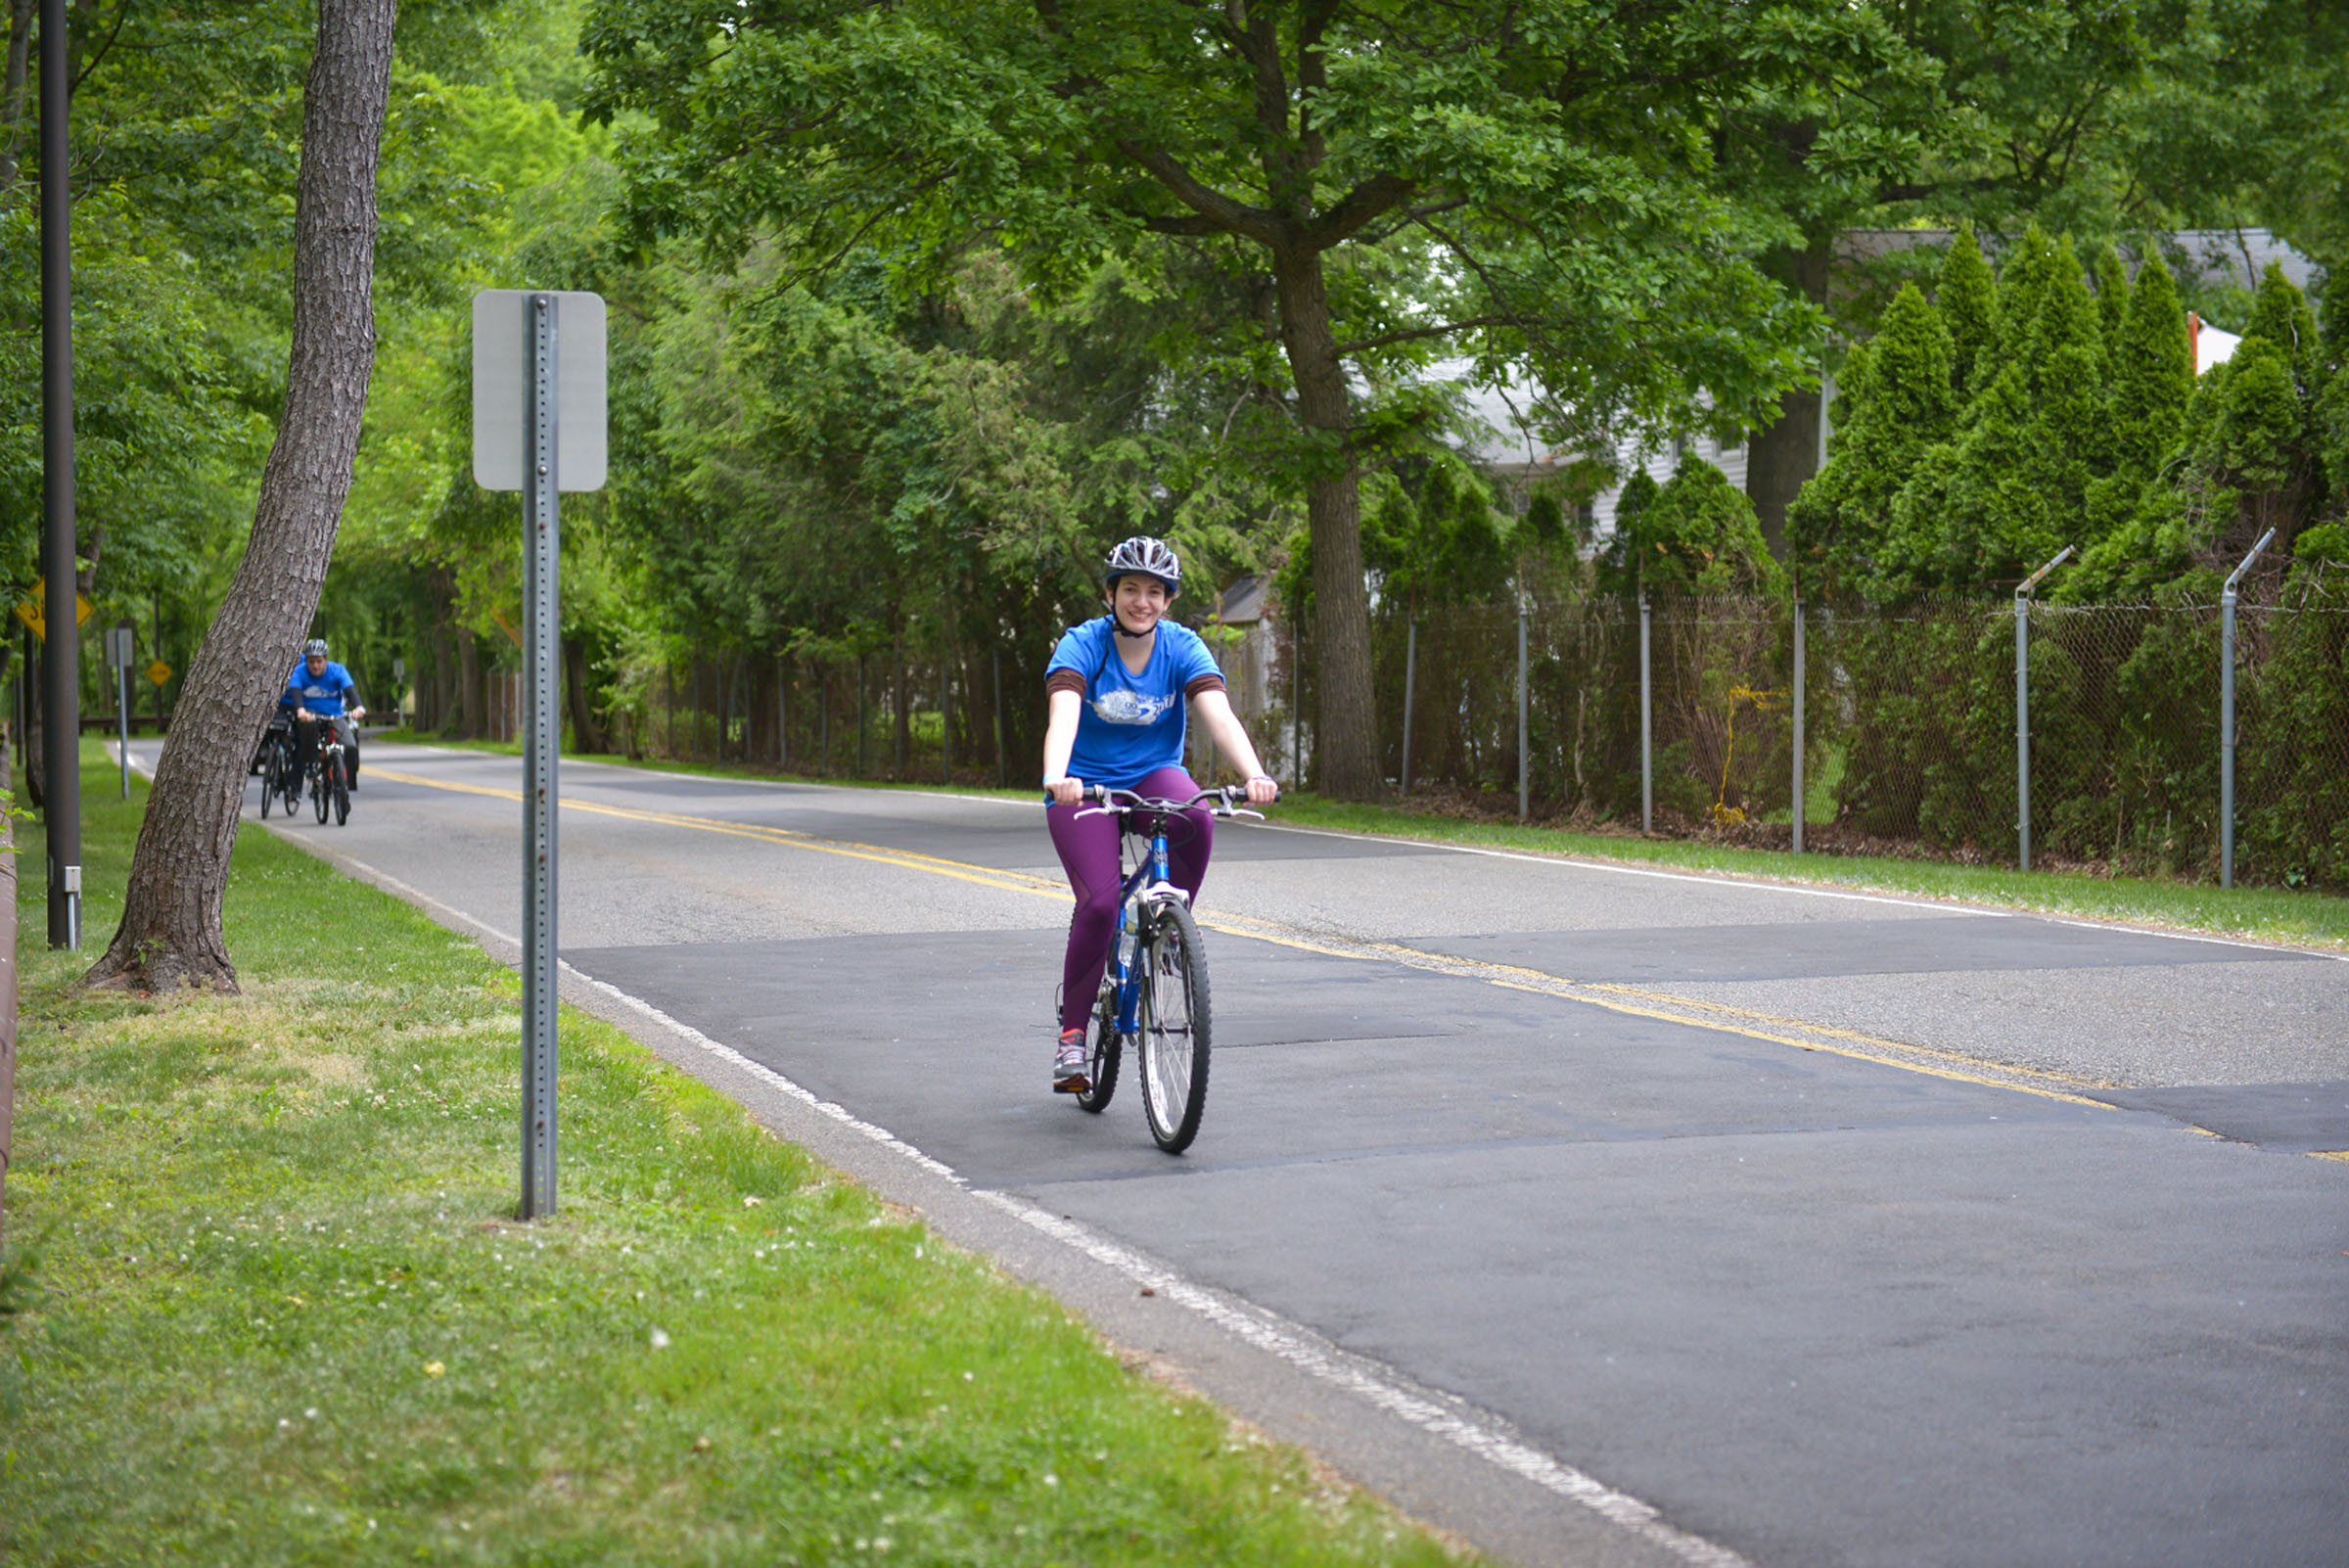 2017-06-04 GTD4A Charity Bike Ride - BCC - Paramus NJ-2294.jpg